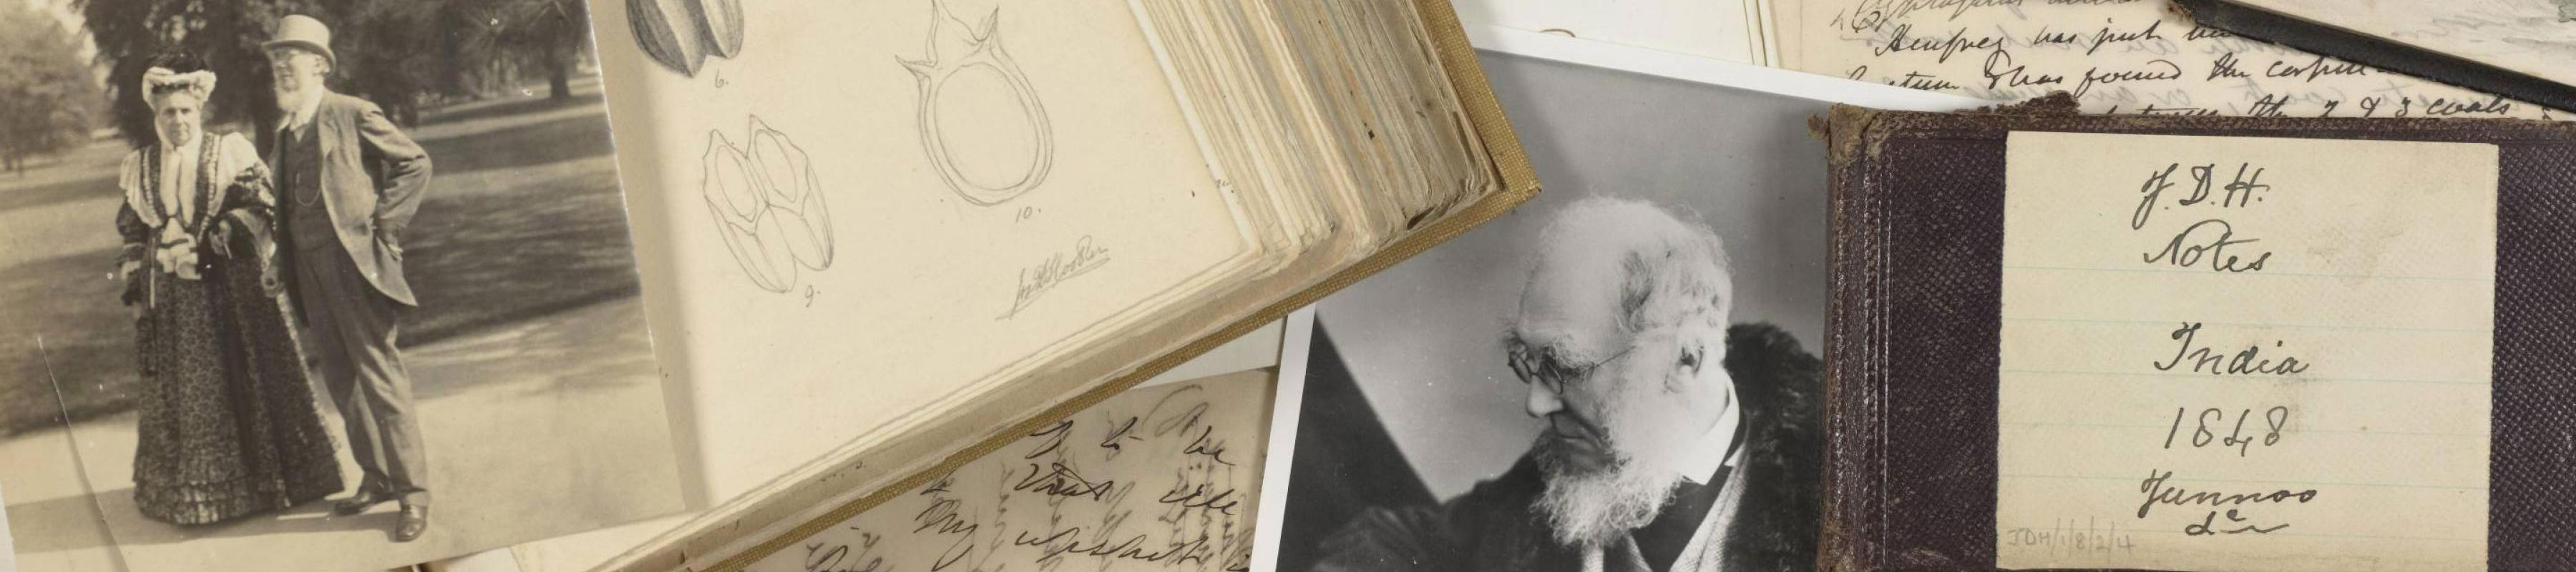 A collage of photos and letters related to Joseph Hooker